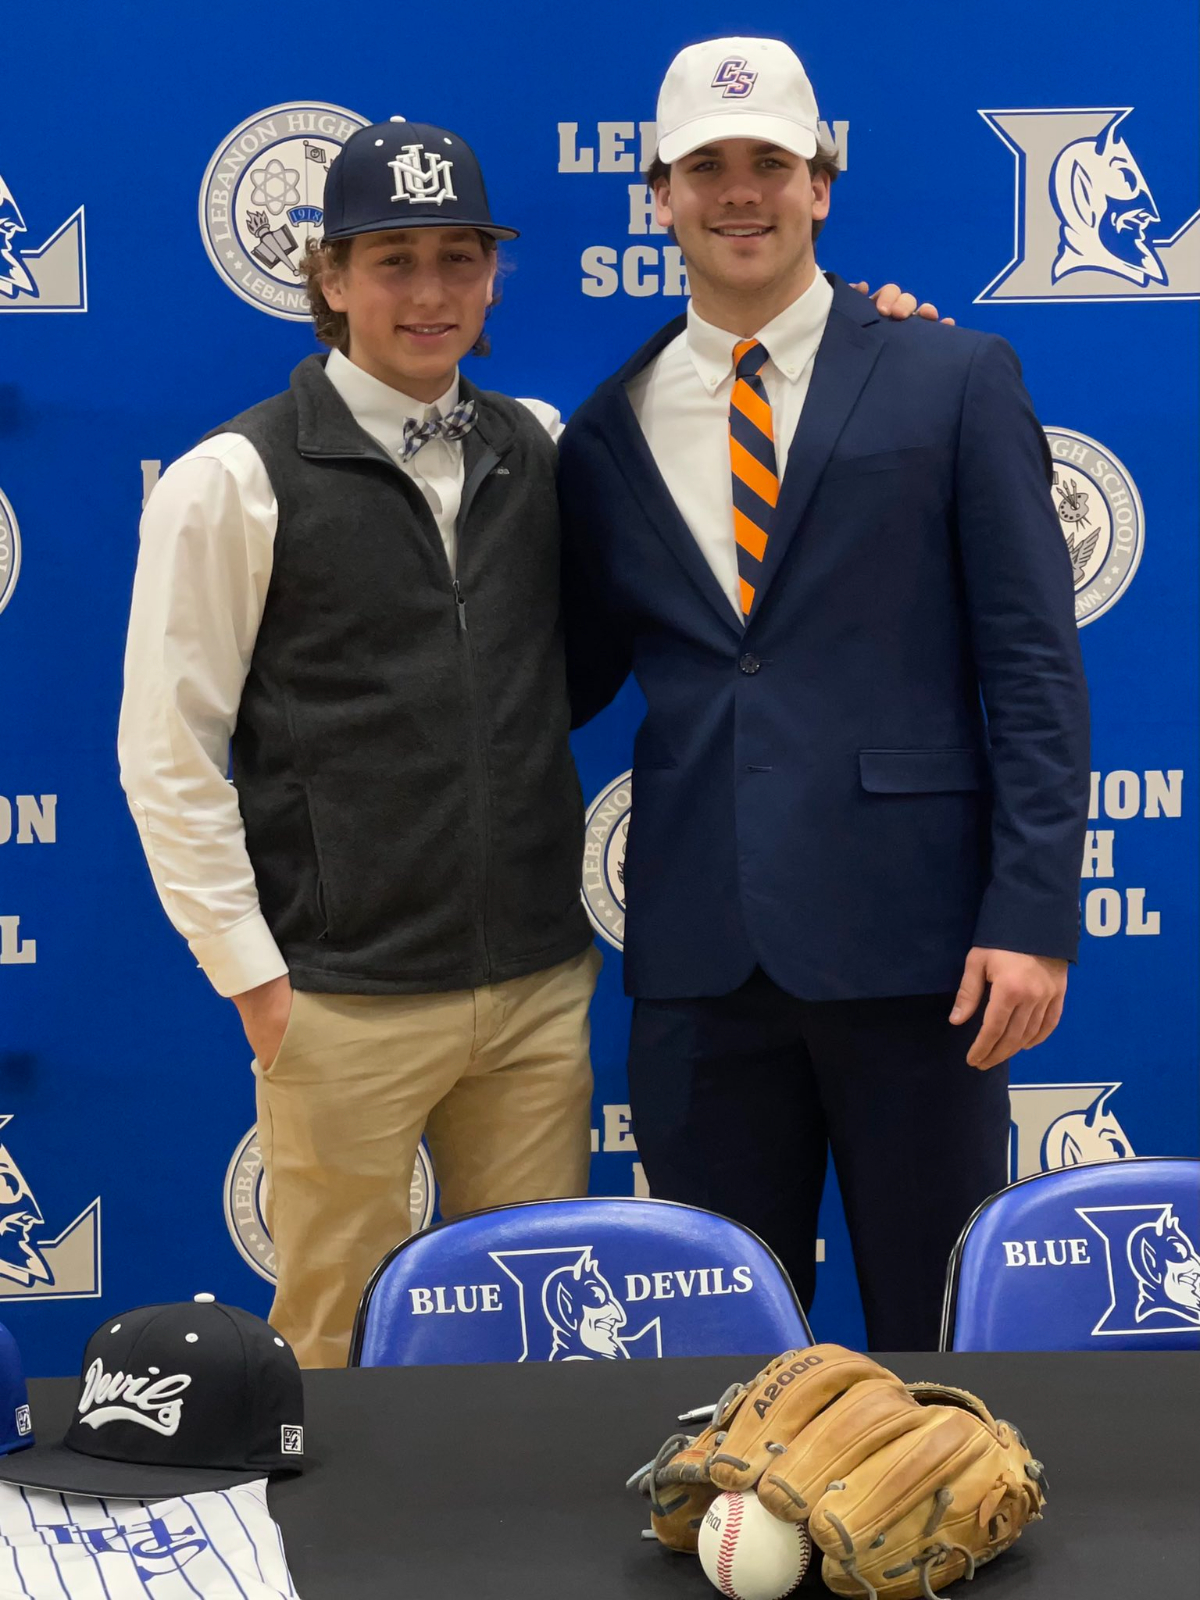 Congratulations to LHS Baseball players, Ty Bailey and Carson Boles, for making it official today!